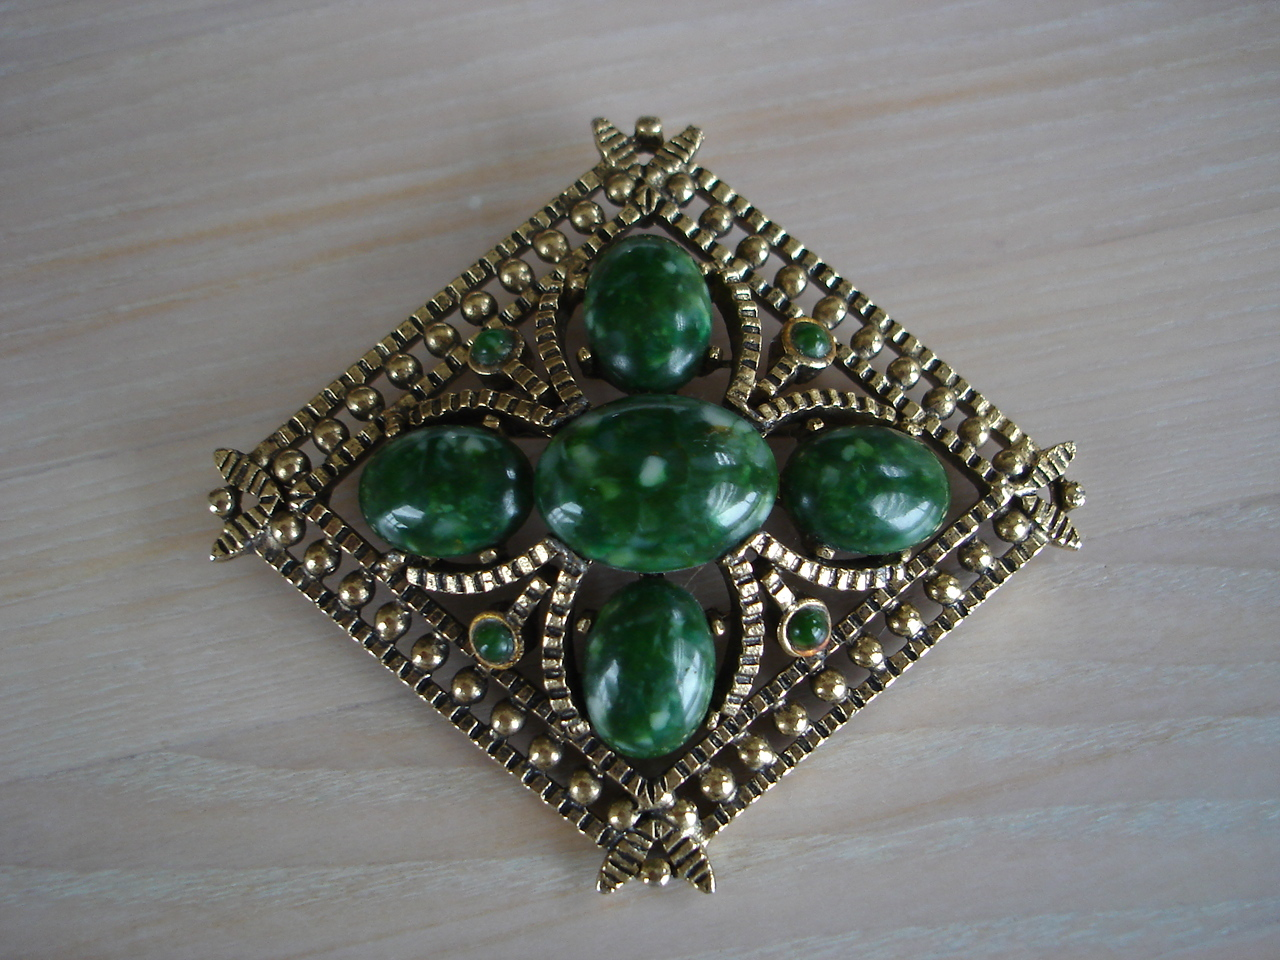 Ornate Diamond Shape Goldtone Brooch, Mottled Jade Green Cab